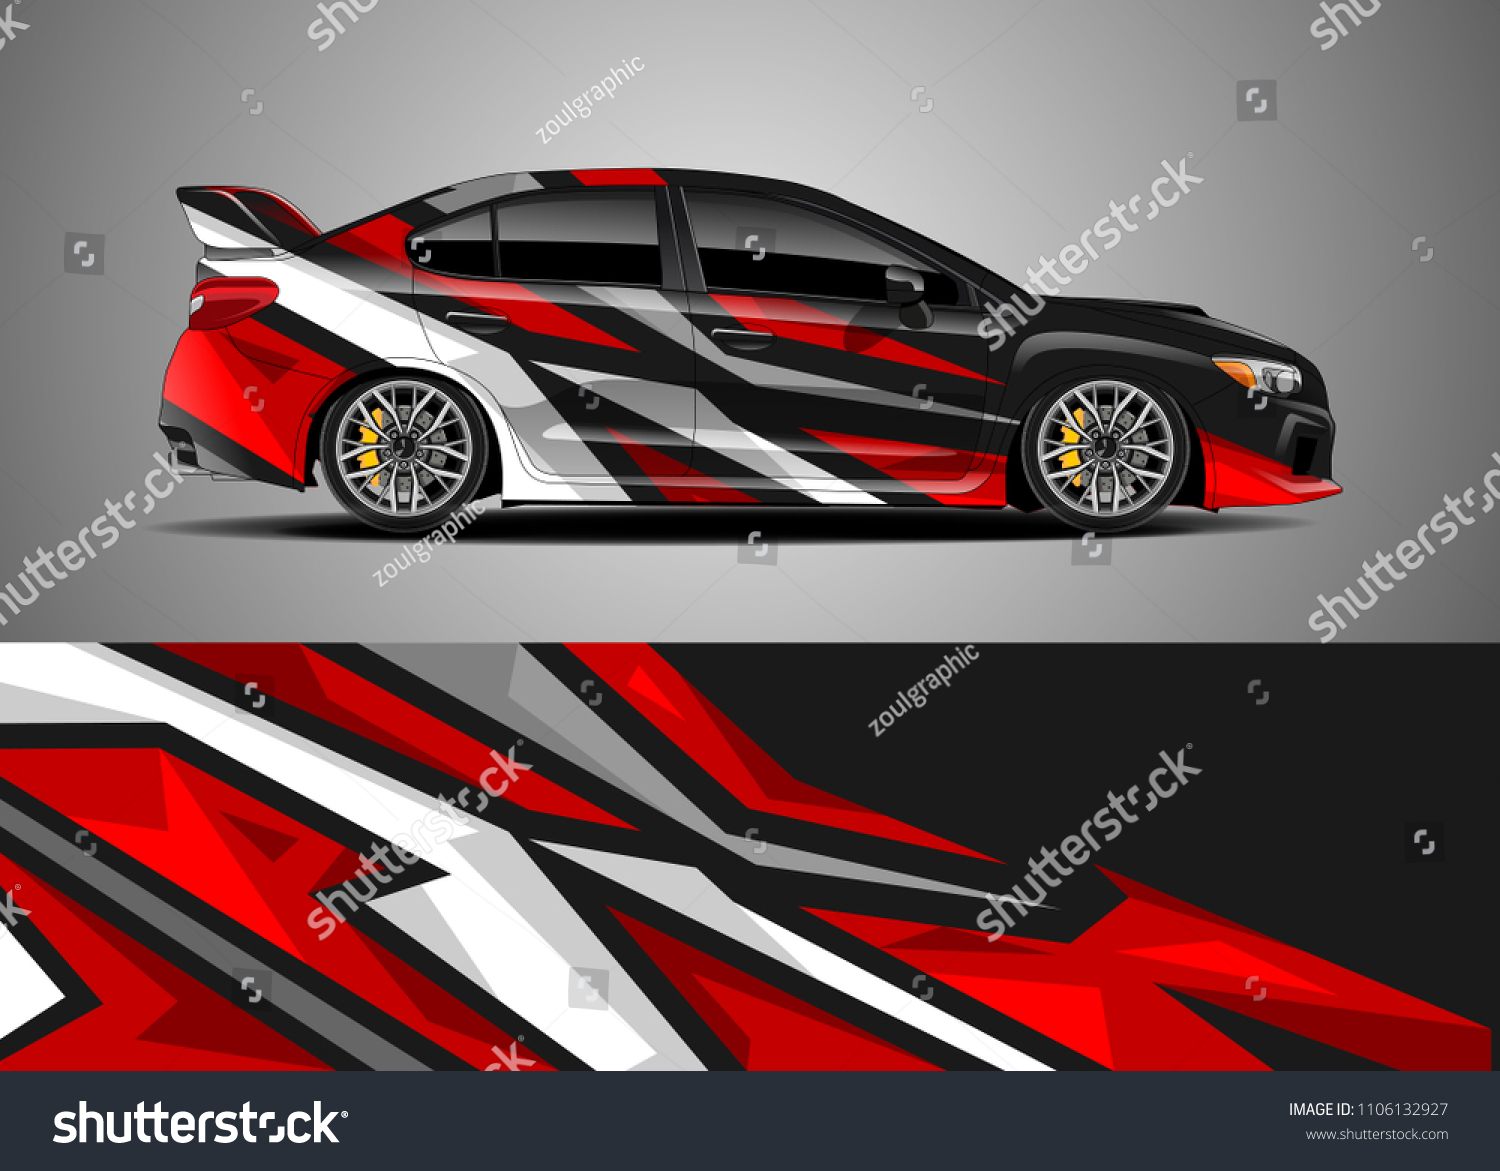 Car decal vector graphic abstract racing designs for vehicle sticker vinyl wrap